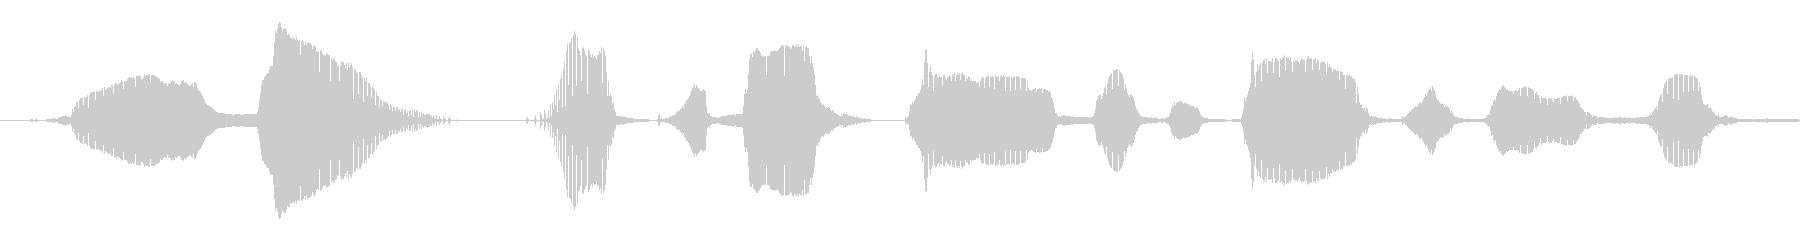 6 year old girl  - Happy New Year -05's unreproduced waveform